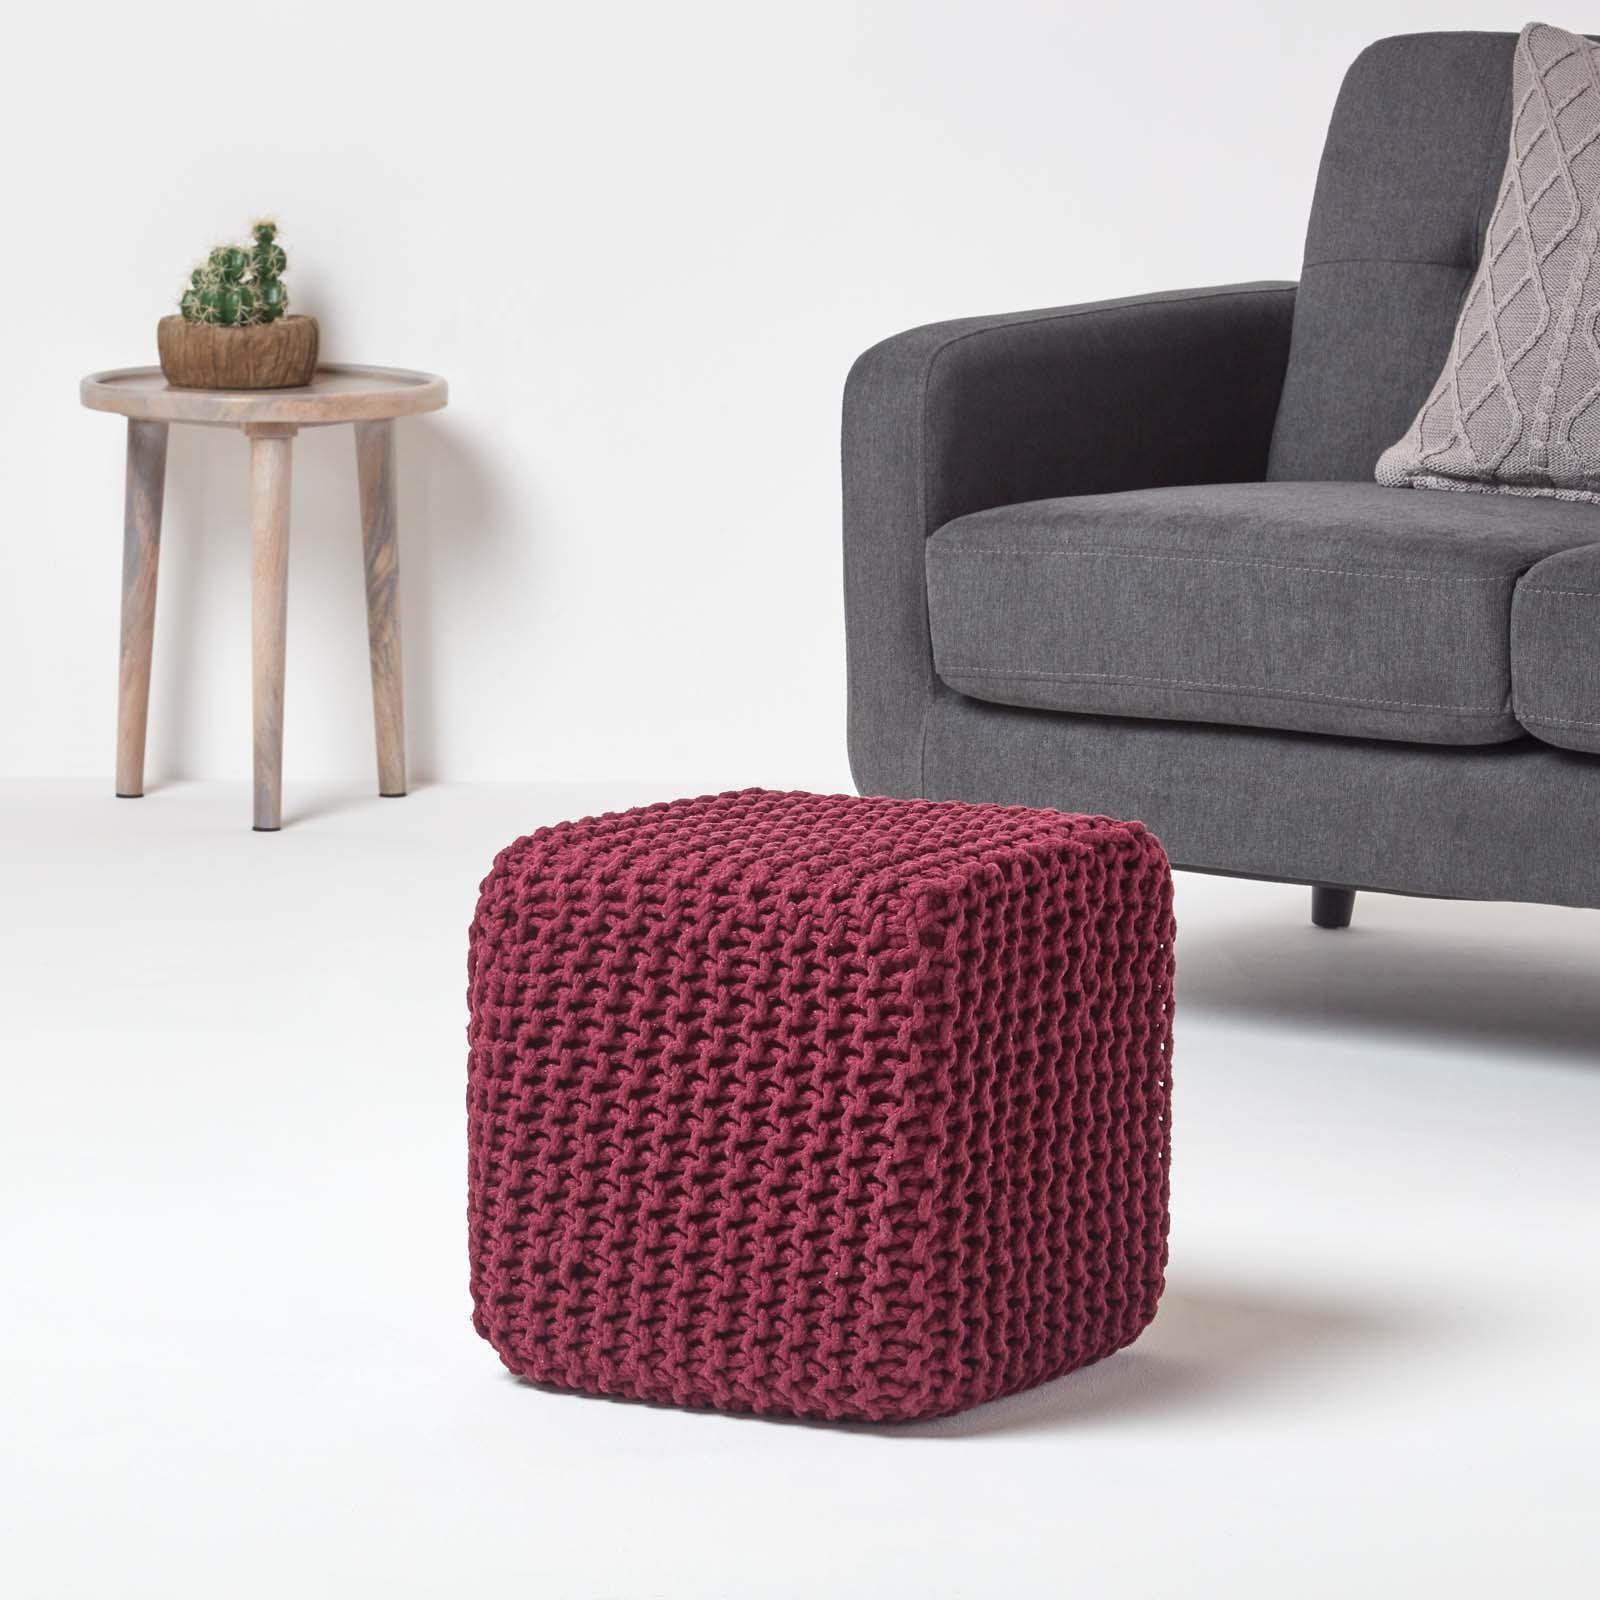 Hand-Knitted-100-Cotton-Pouffes-Round-Sphere-Or-Cube-Square-Chunky-Footstools thumbnail 158